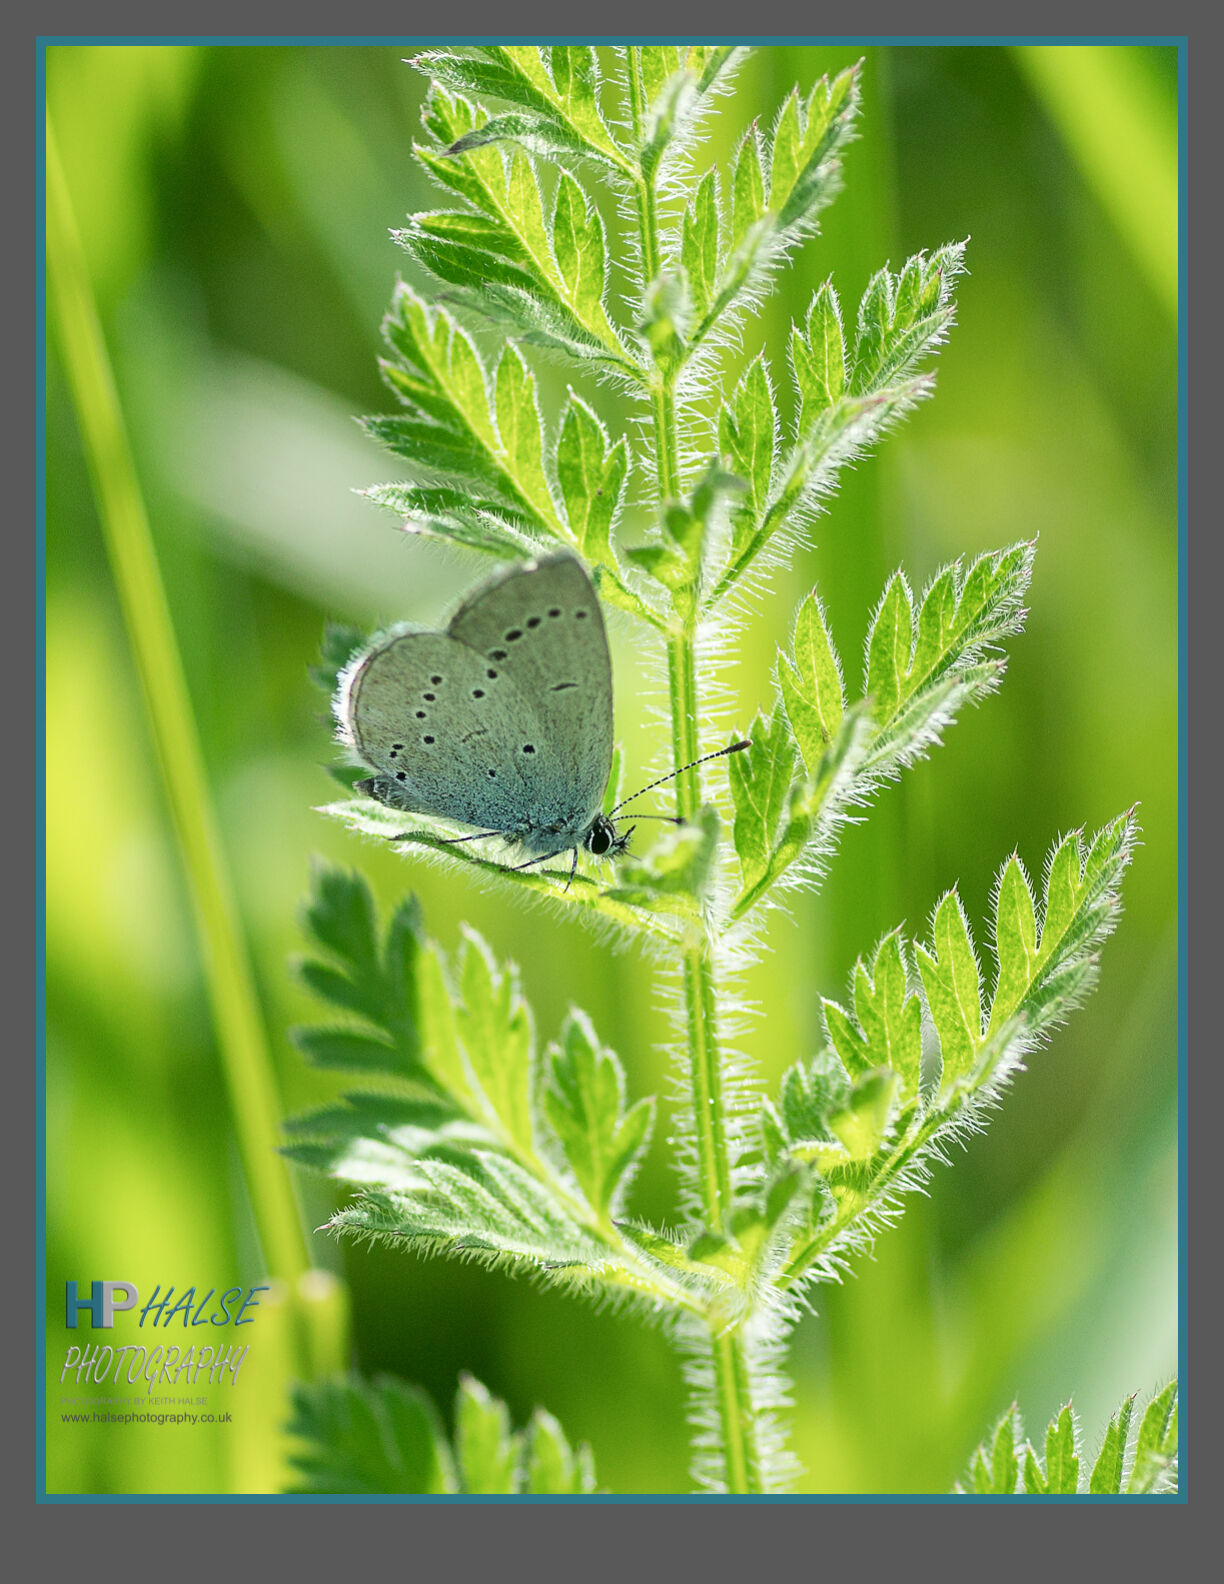 008 Small Blue Butterfly